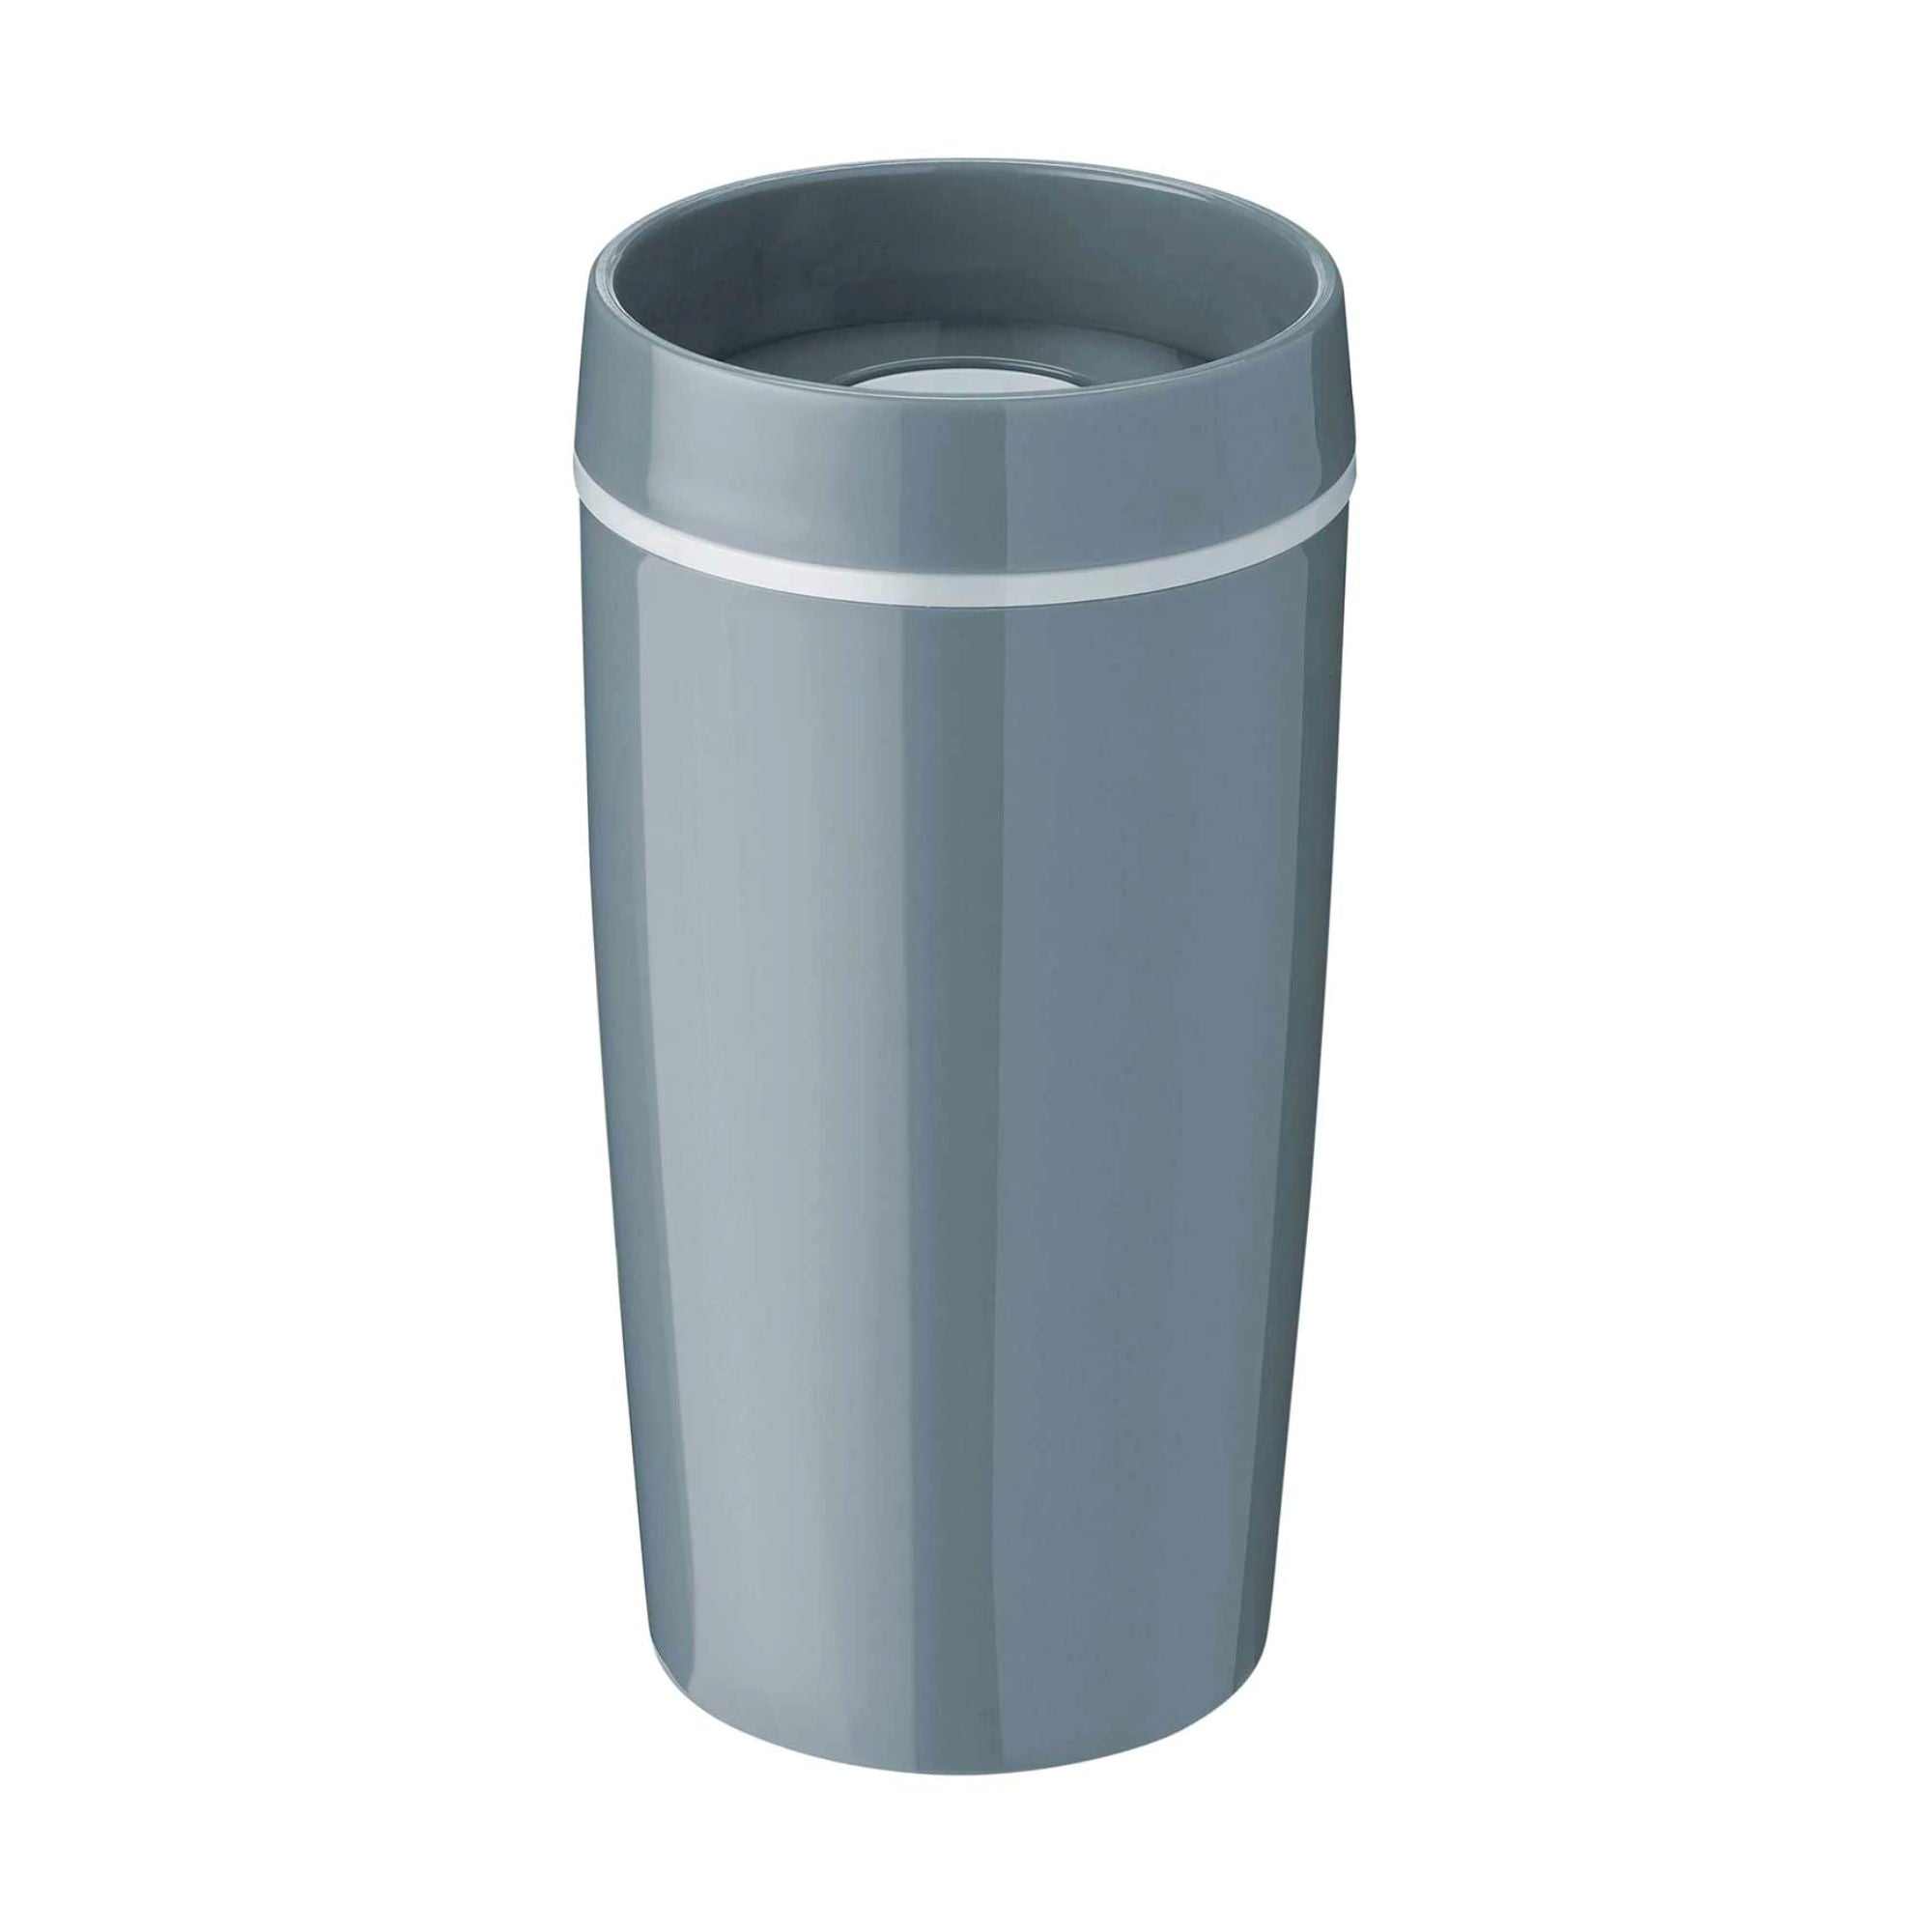 Stelton Bring-It To-Go Mug 340ml , Grey